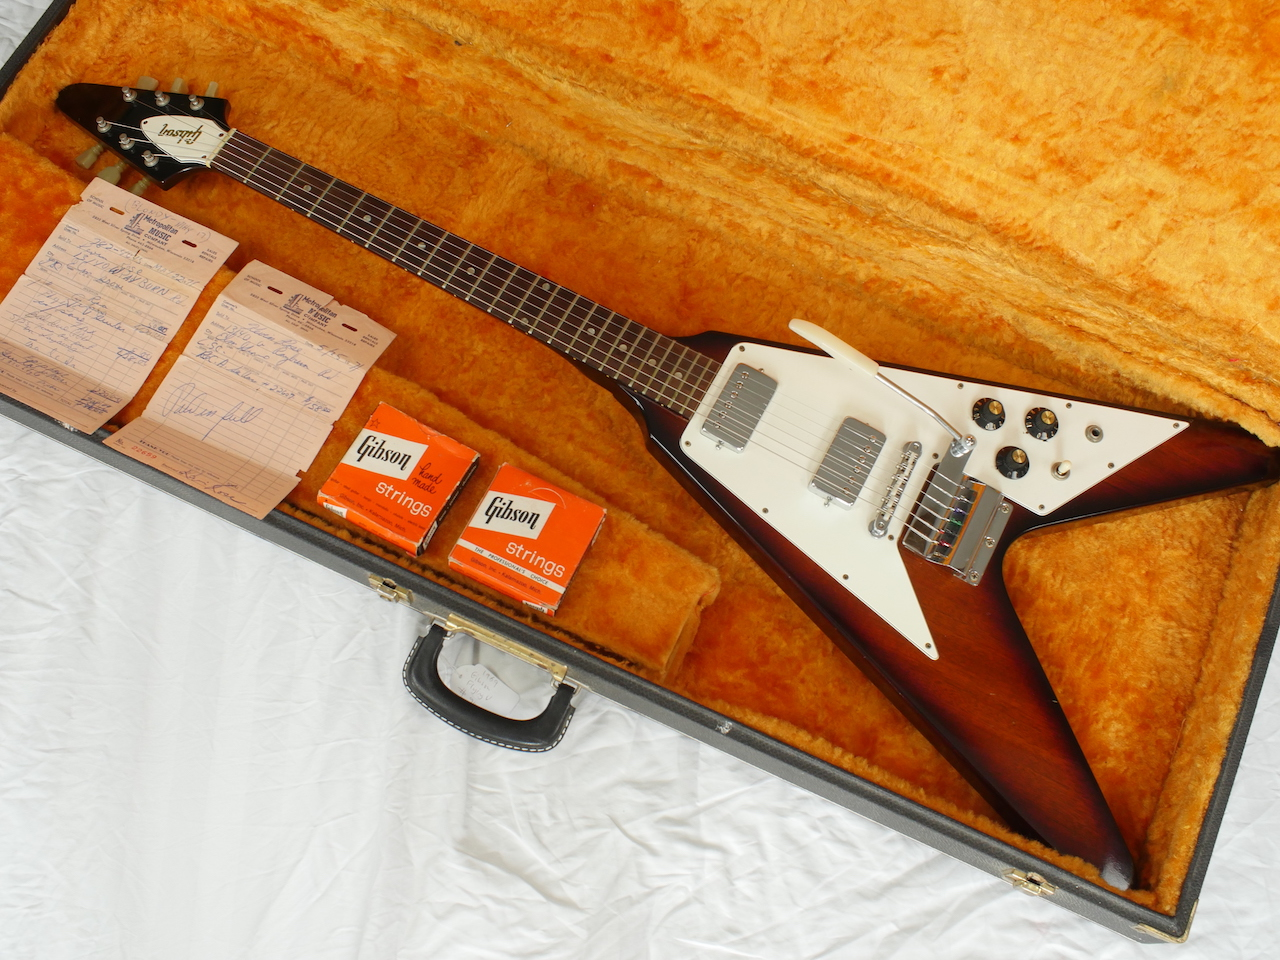 gibson flying v 1967 sunburst guitar for sale atoyboy guitars. Black Bedroom Furniture Sets. Home Design Ideas